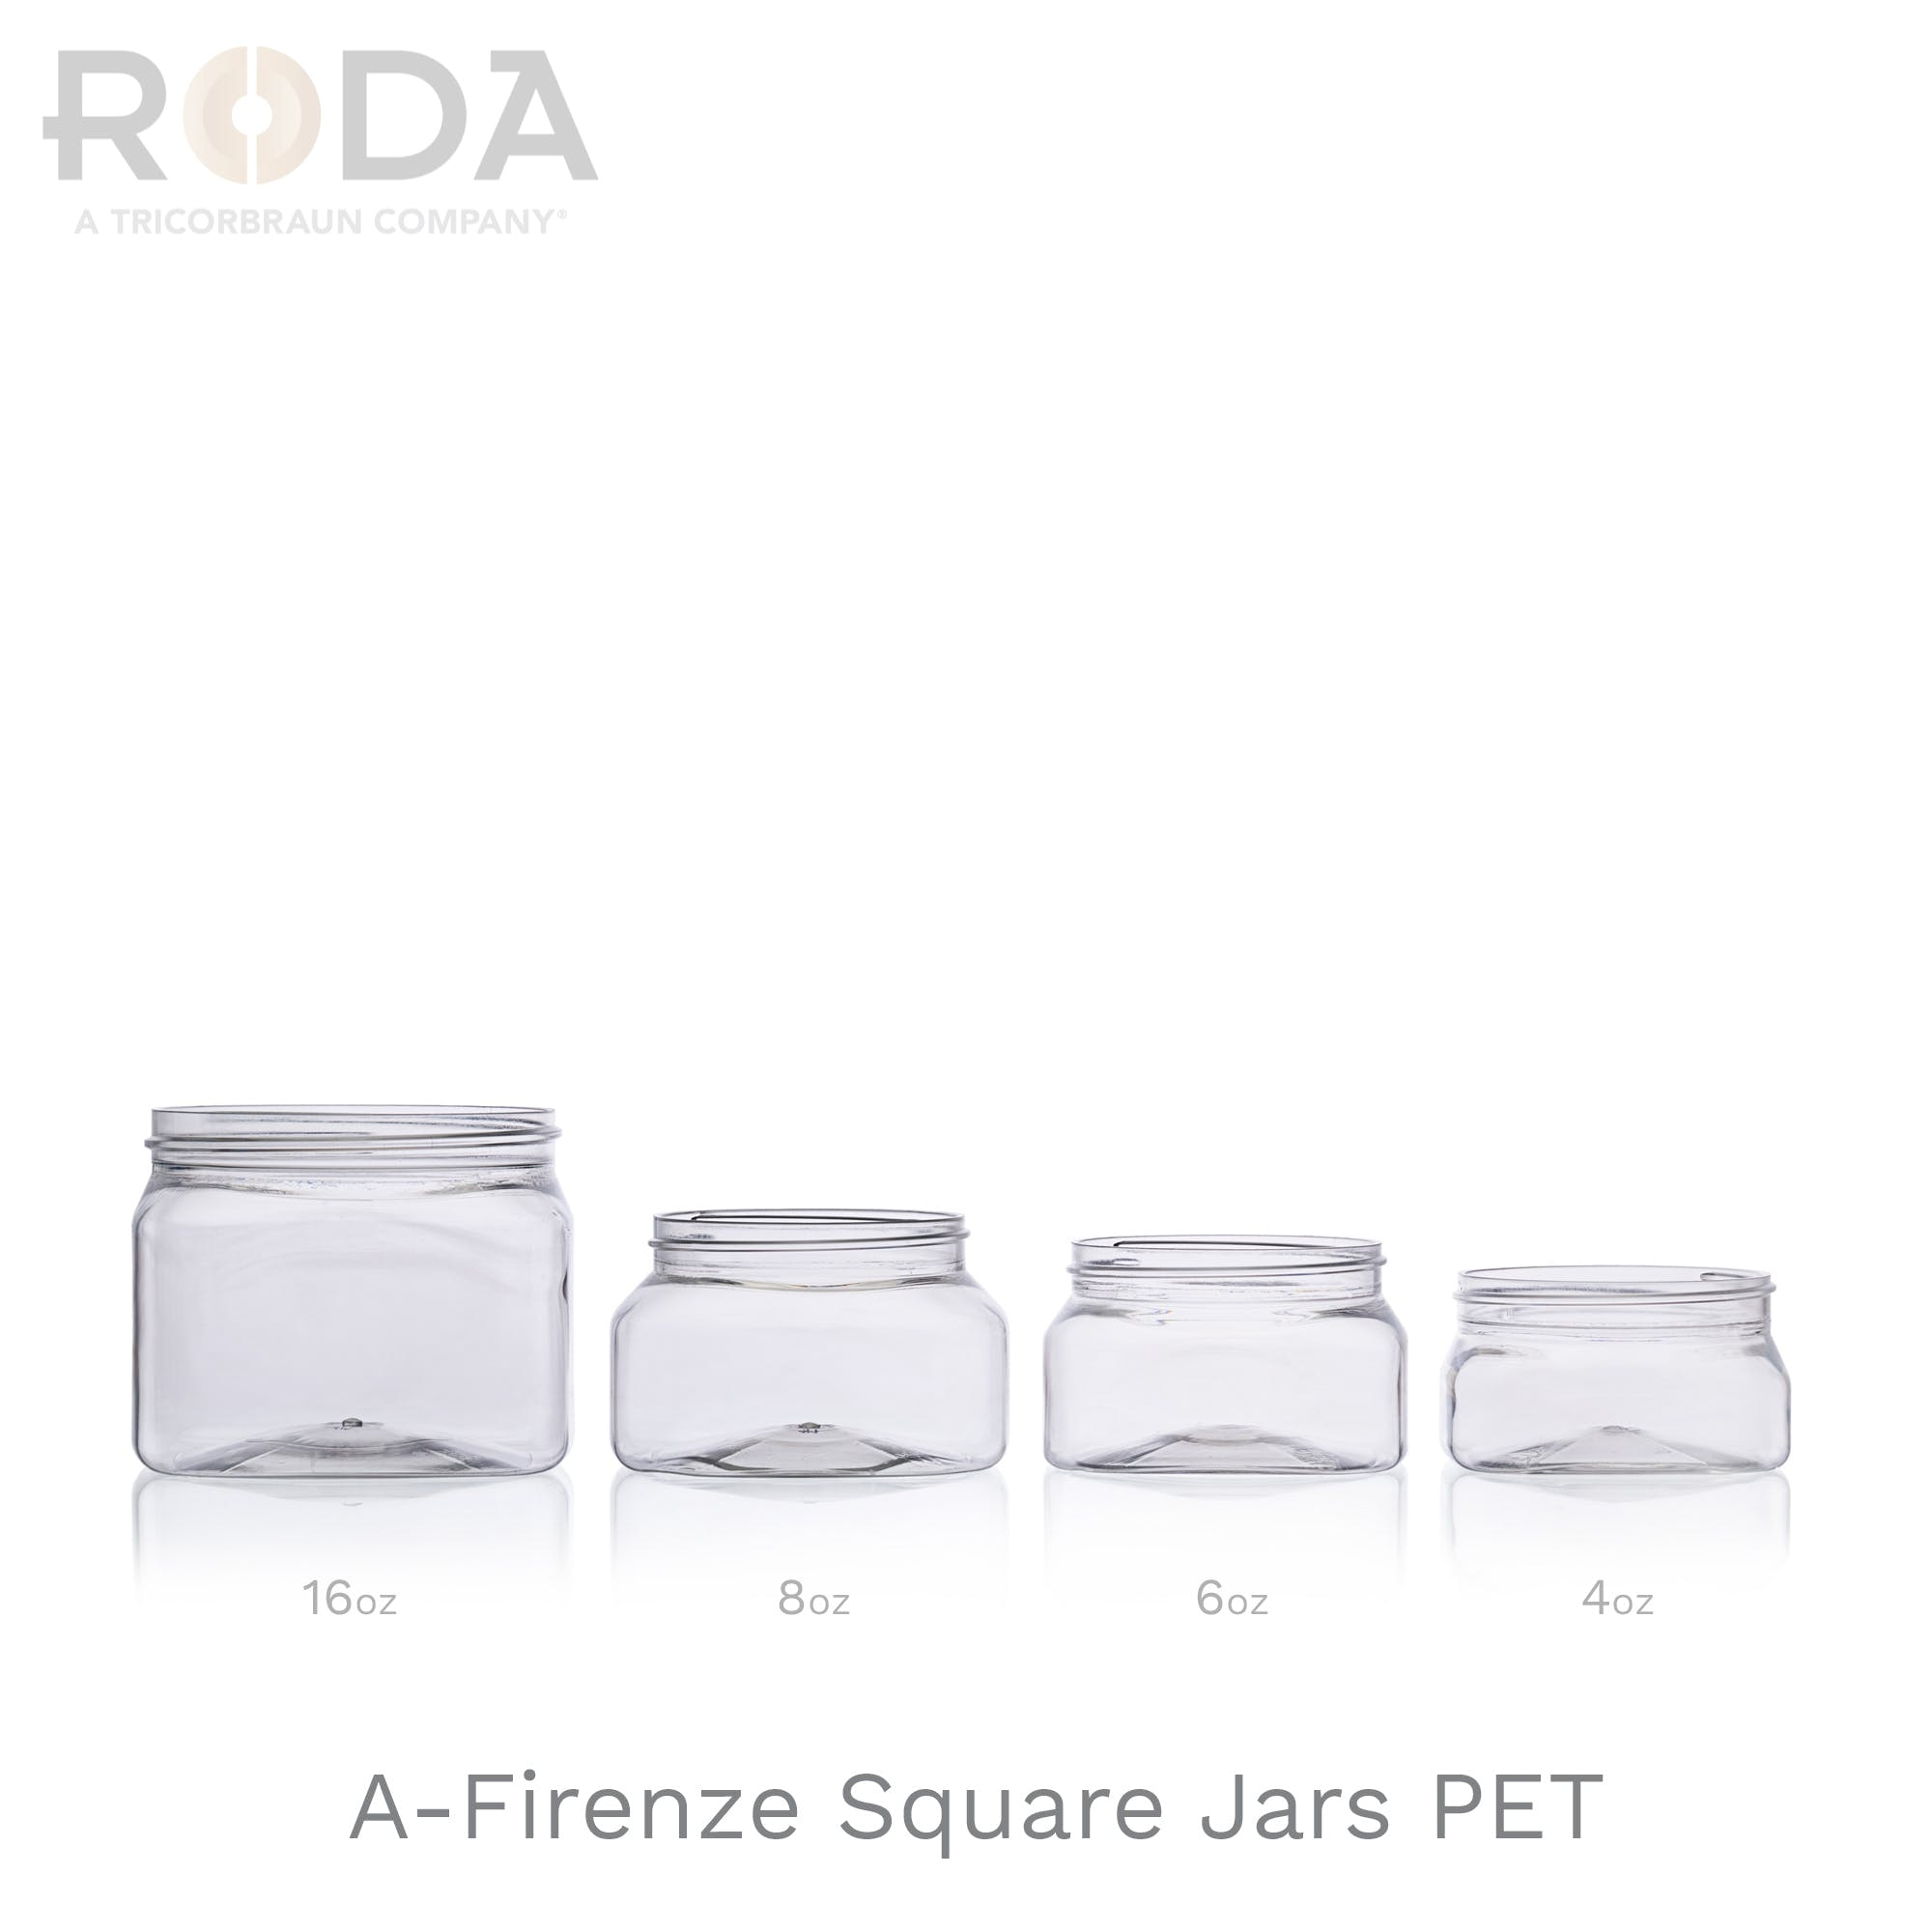 A-Firenze Square Jars PET